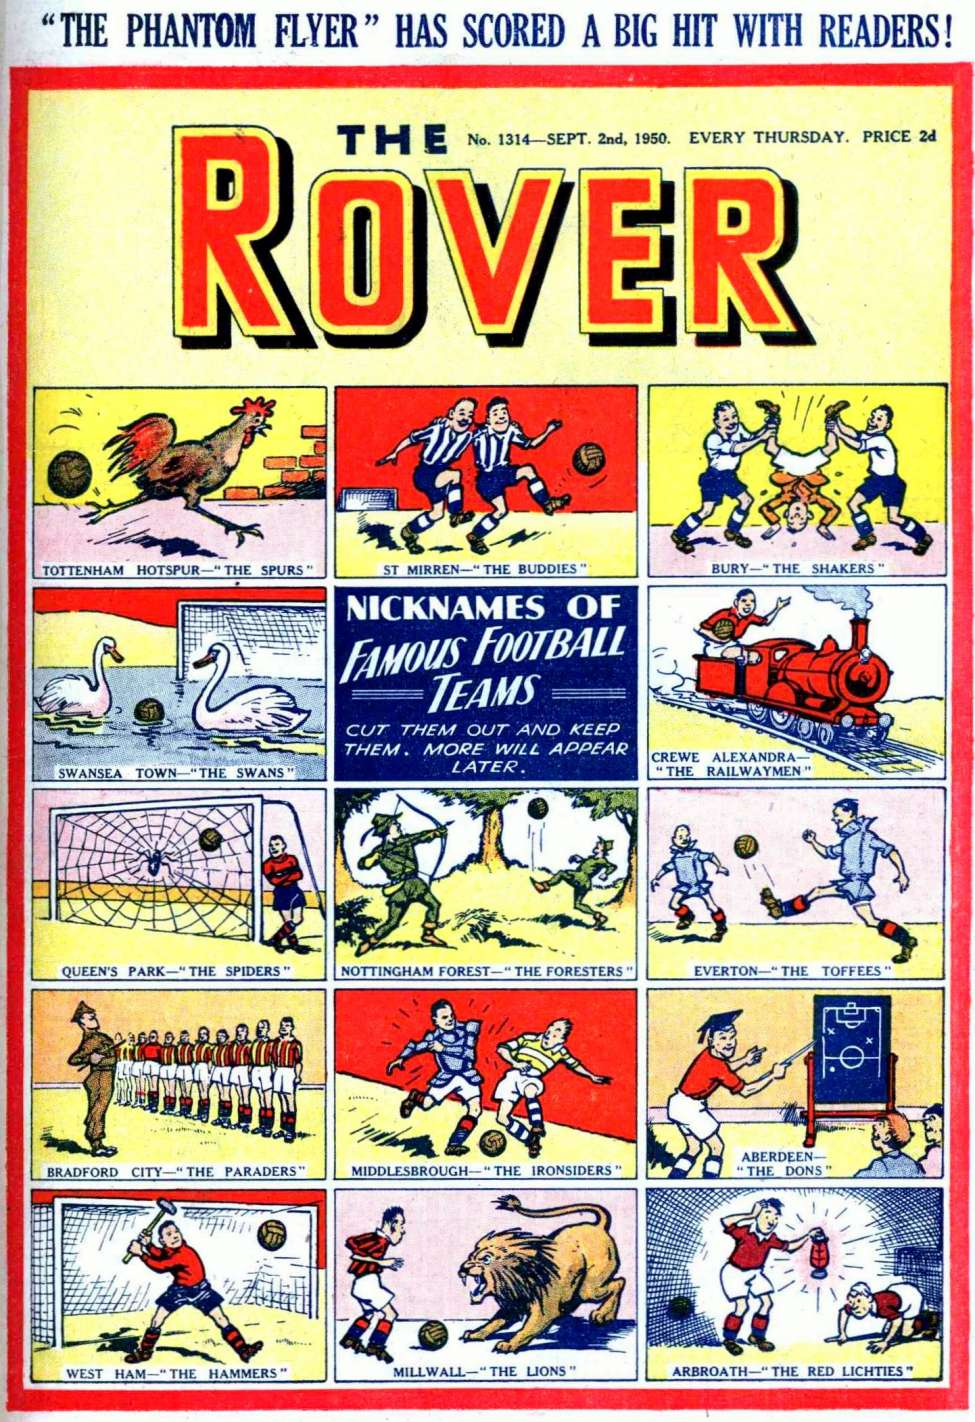 Comic Book Cover For The Rover 1314